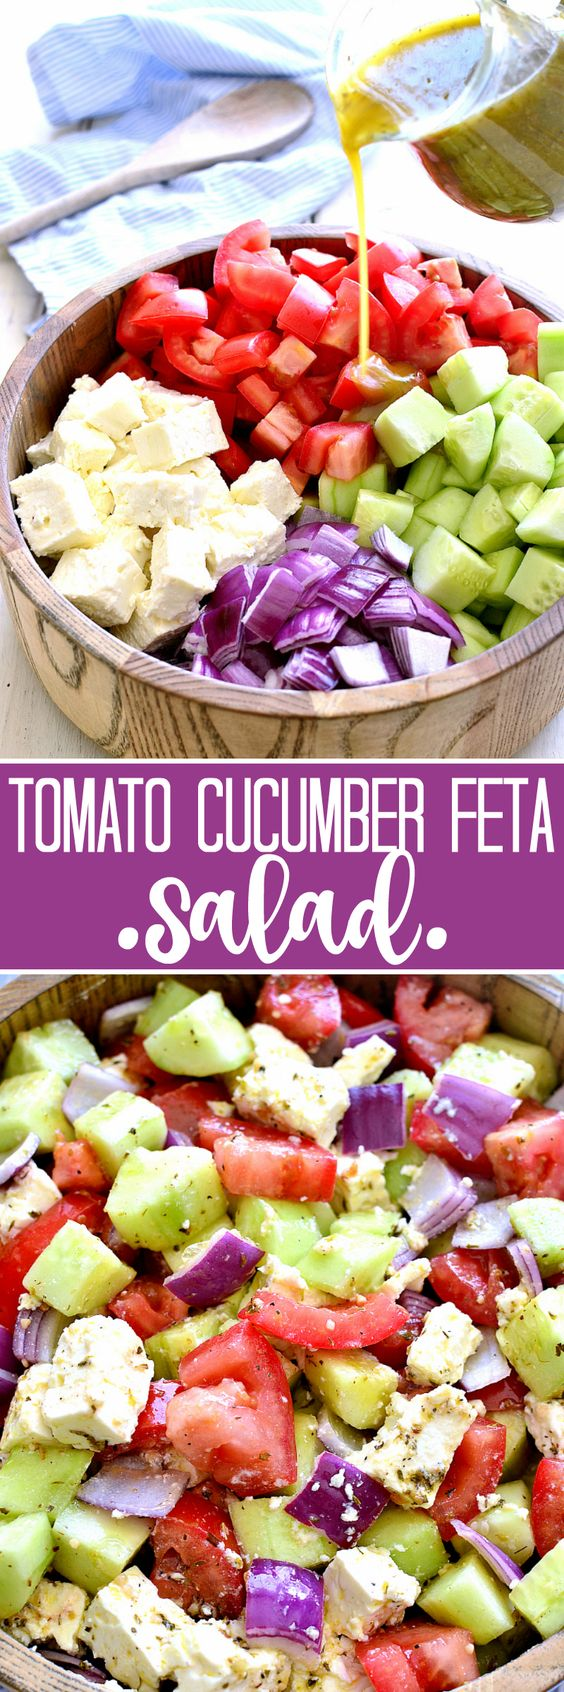 This Tomato, Cucumber & Feta Salad Recipe via Lemon Tree Dwelling is fresh, flavorful, and SO delicious! It comes together quickly with just a handful of ingredients and is one of their favorite go-to salads for summer!